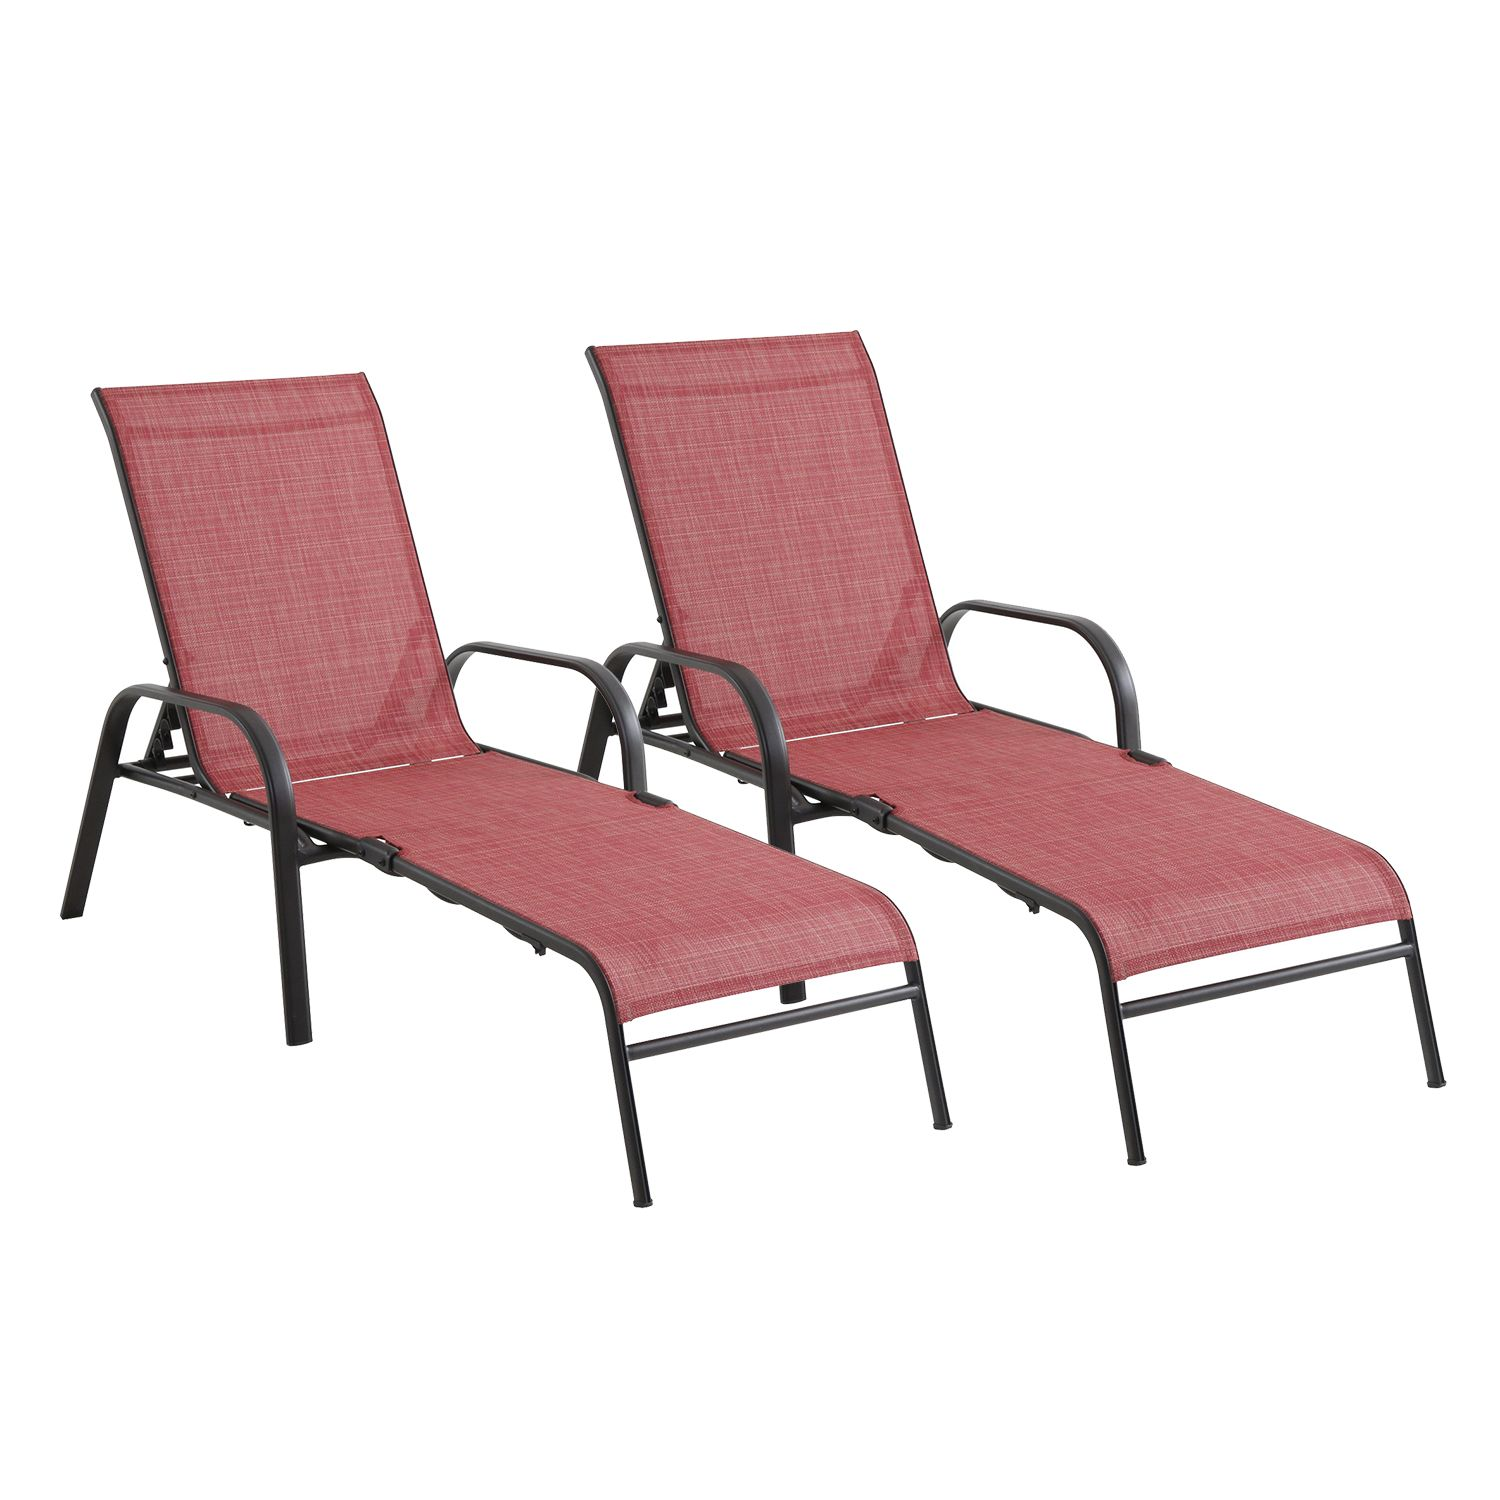 SONOMA Goods For Life™ Coronado Folding Patio Chaise Lounge Chair 2 Piece  Set